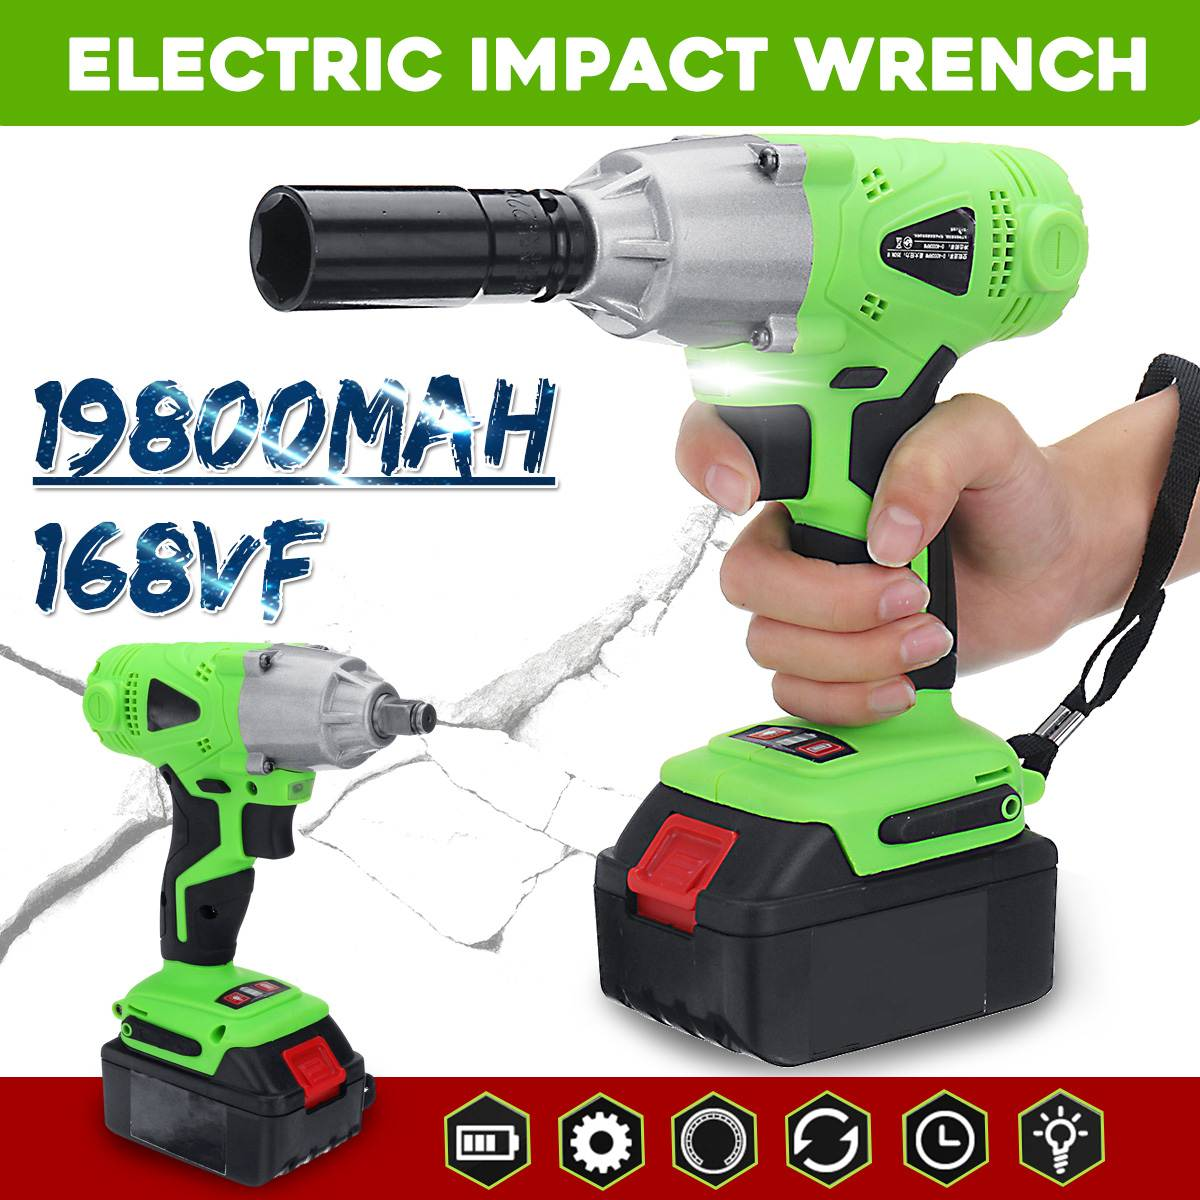 Doersupp 168VF Multifunctional Infinitely Variable Speed Electric Wrench Impact 19800mAh Rechargeable Li-ion Battery Power Tools